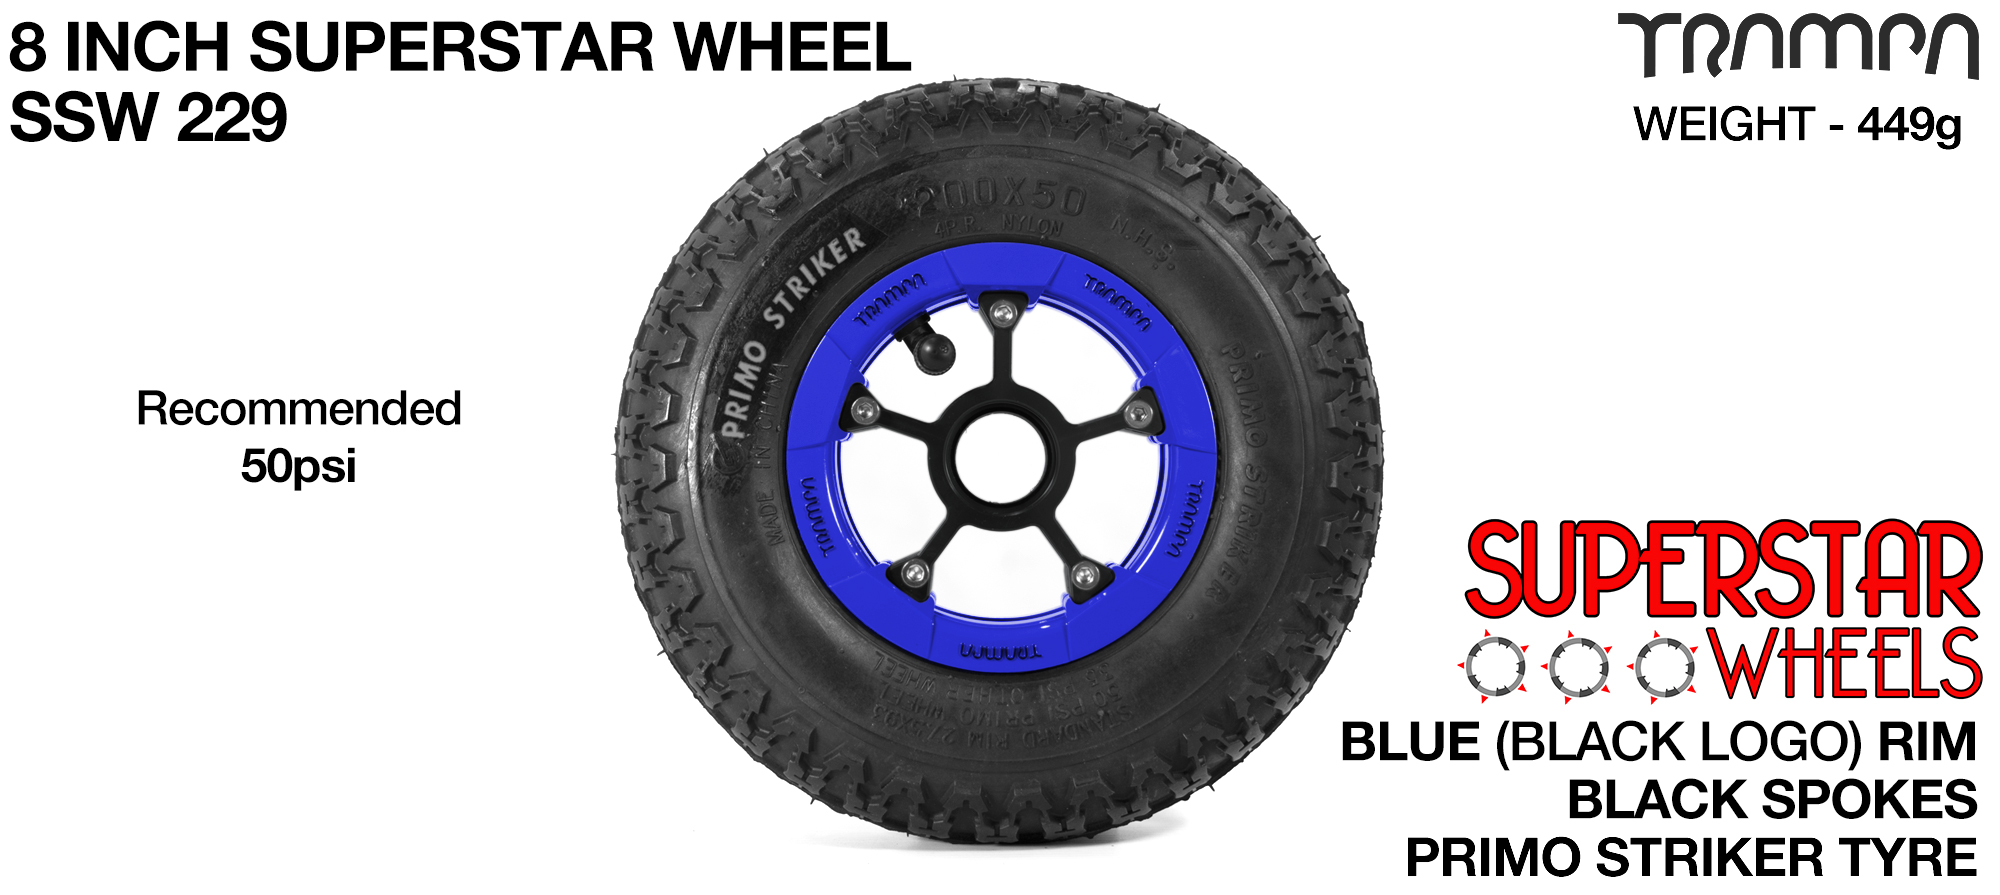 8 Inch Wheel - Blue Superstar Rim Black Anodised Spokes & Primo Striker 8 Inch Tyre